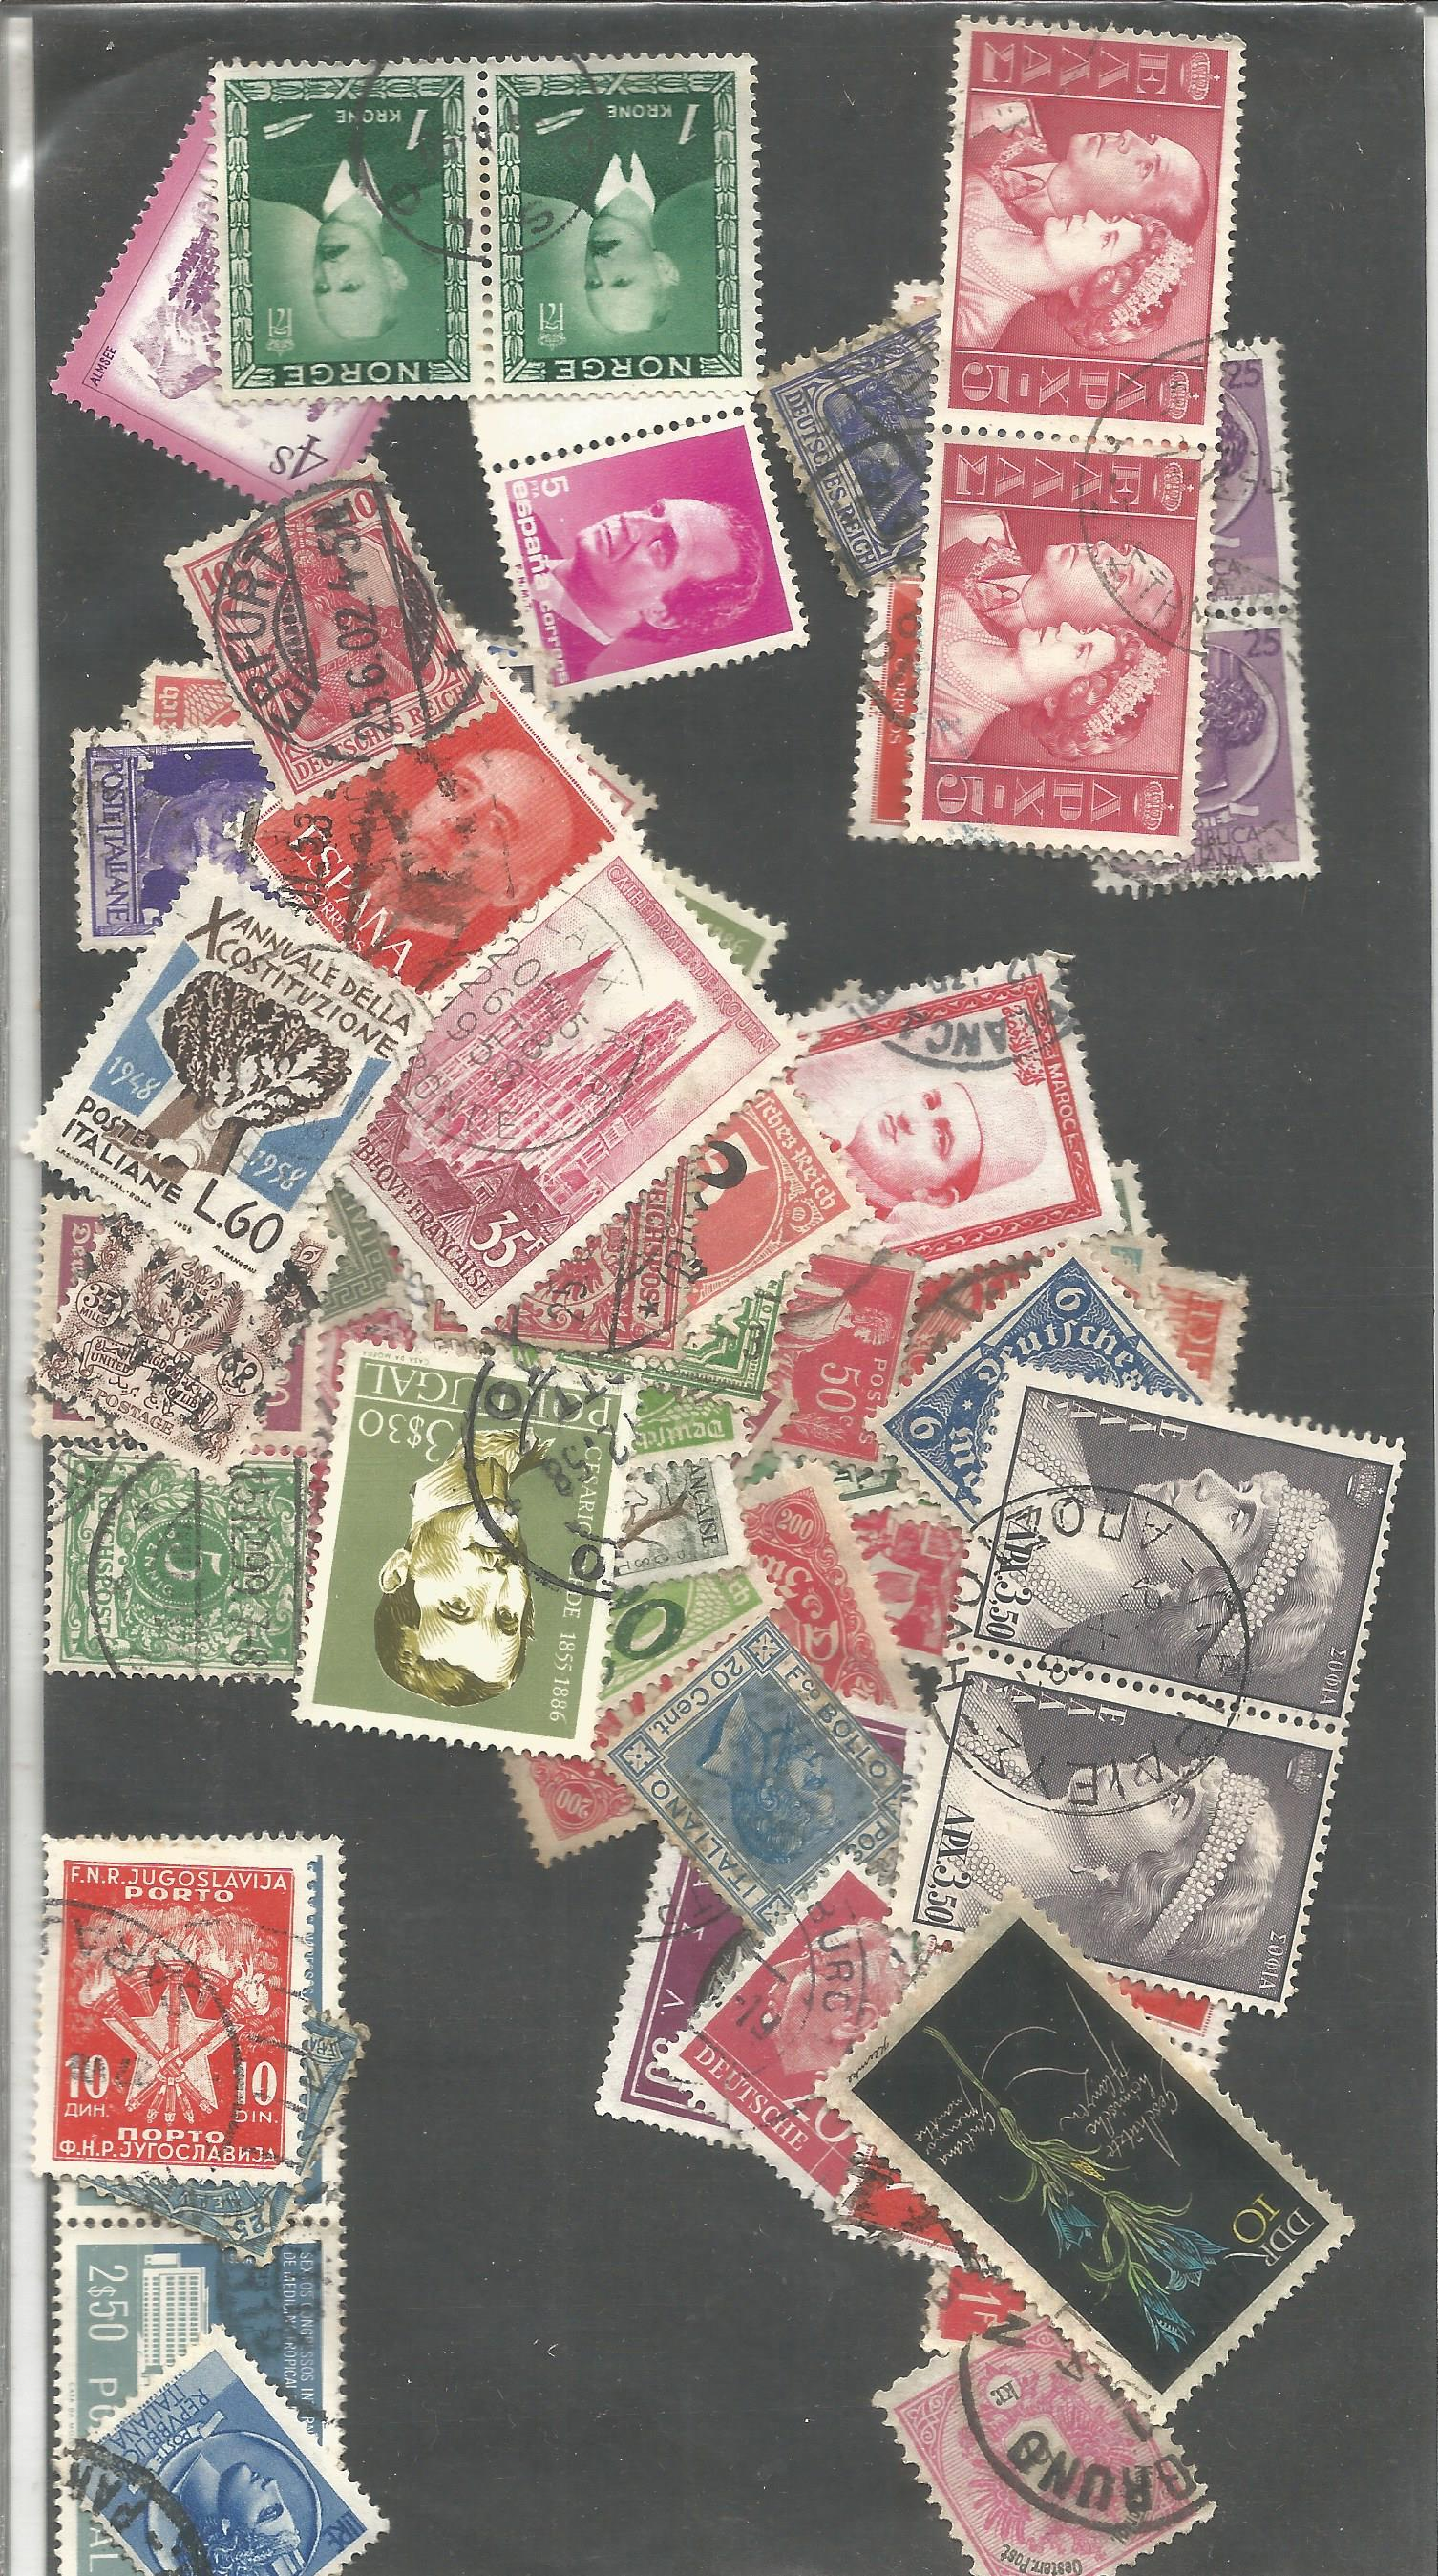 World loose stamp collection. Good condition. We combine postage on multiple winning lots and can - Image 2 of 2